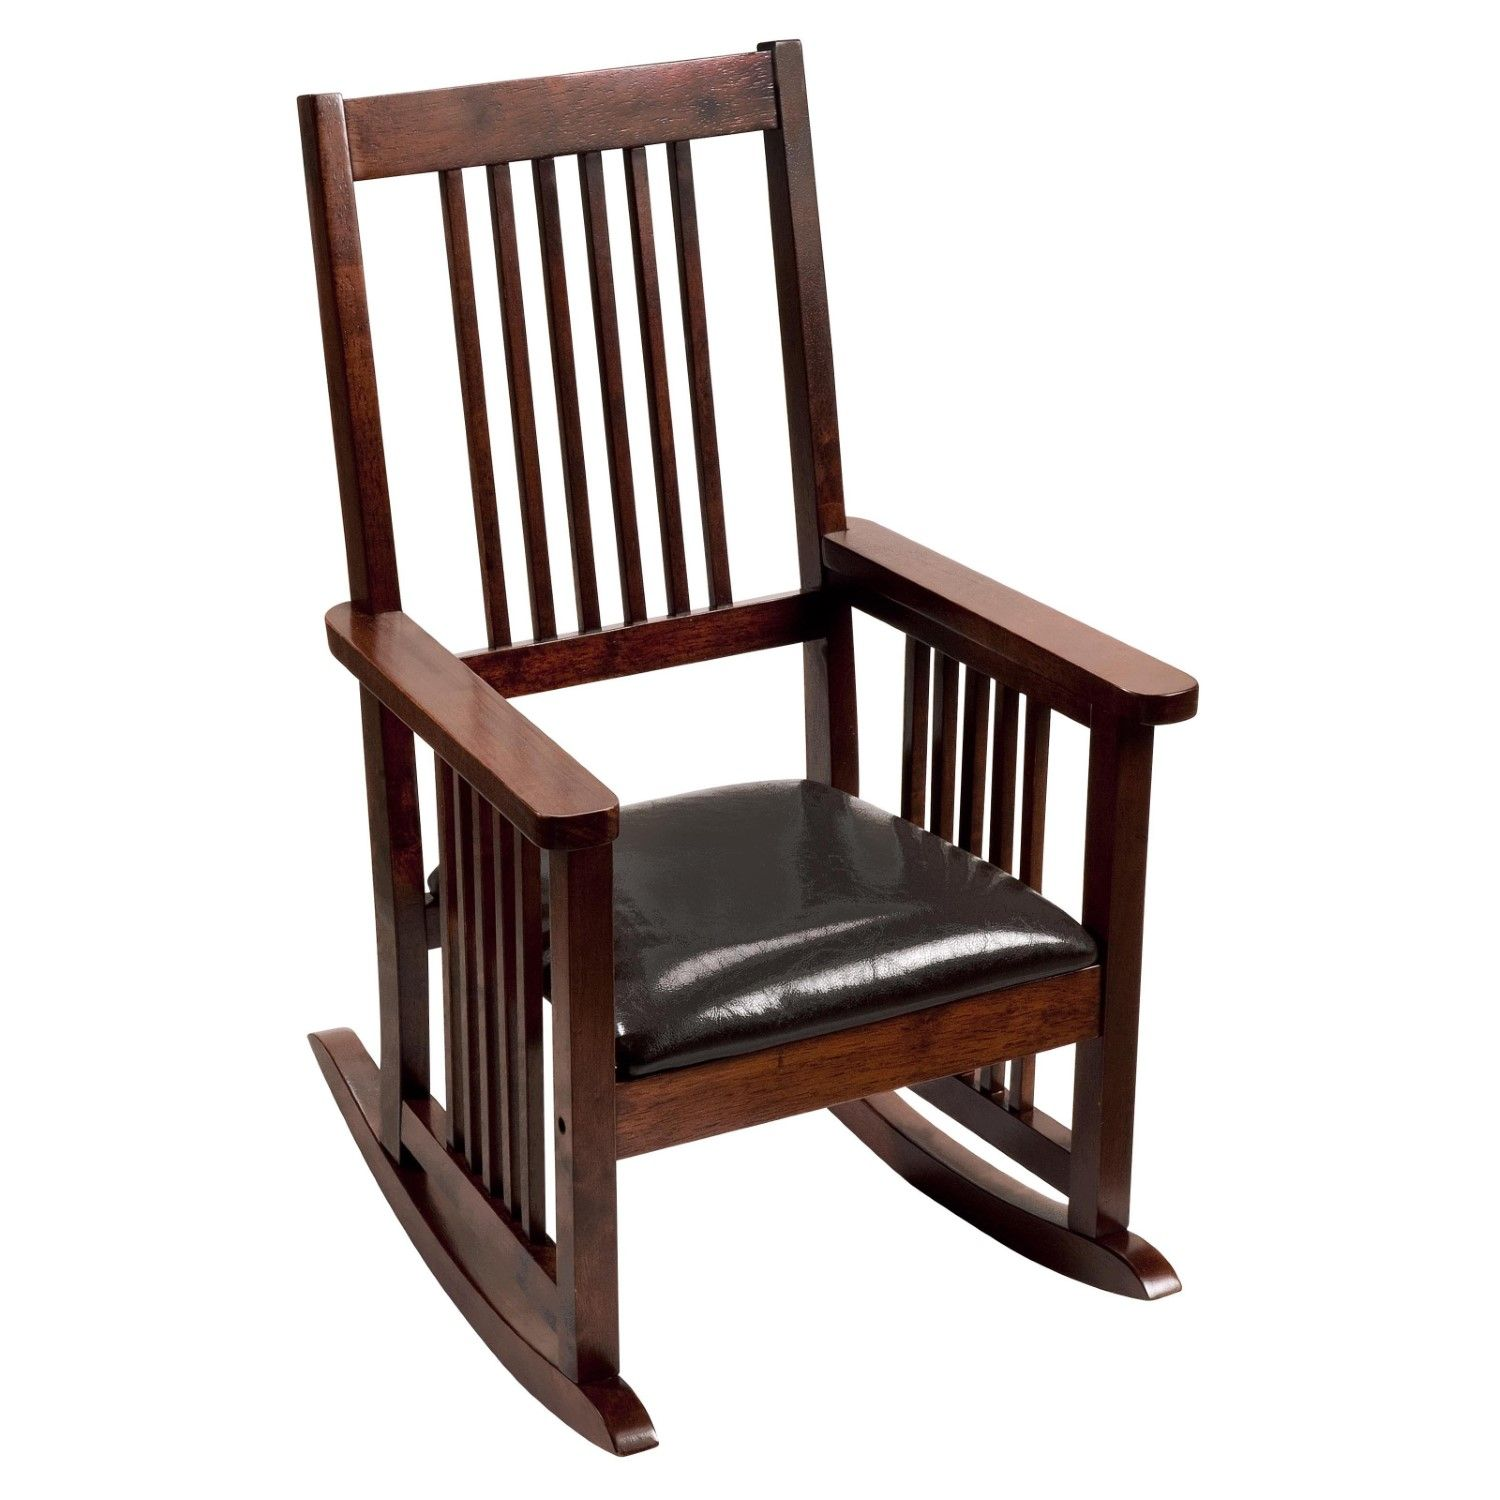 Mission Style Childrens Rocking Chair With Upholstered Seat